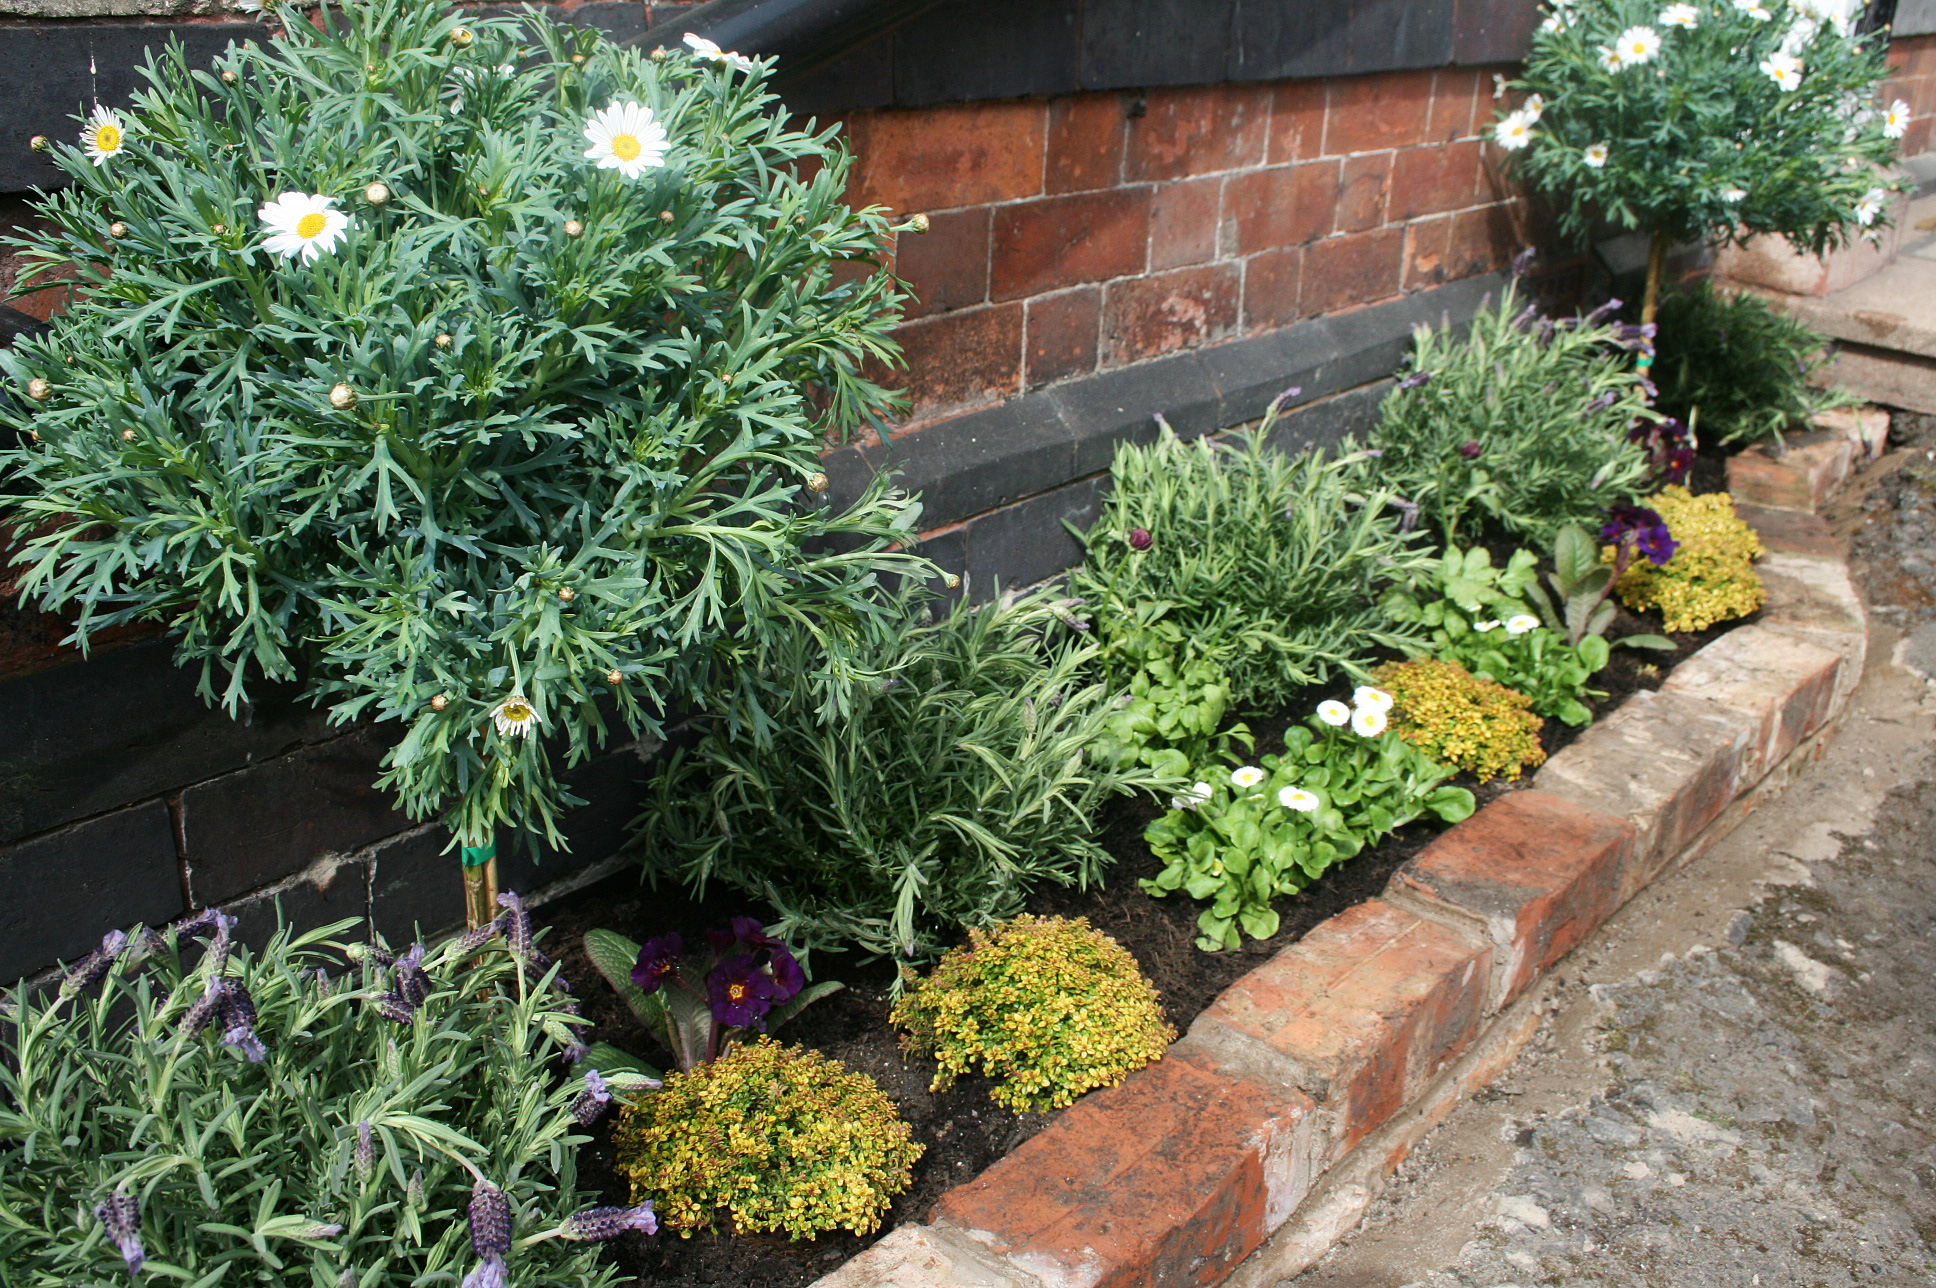 Plant Bed How To Build And Plant A Reclaimed Brick Raised Bed With